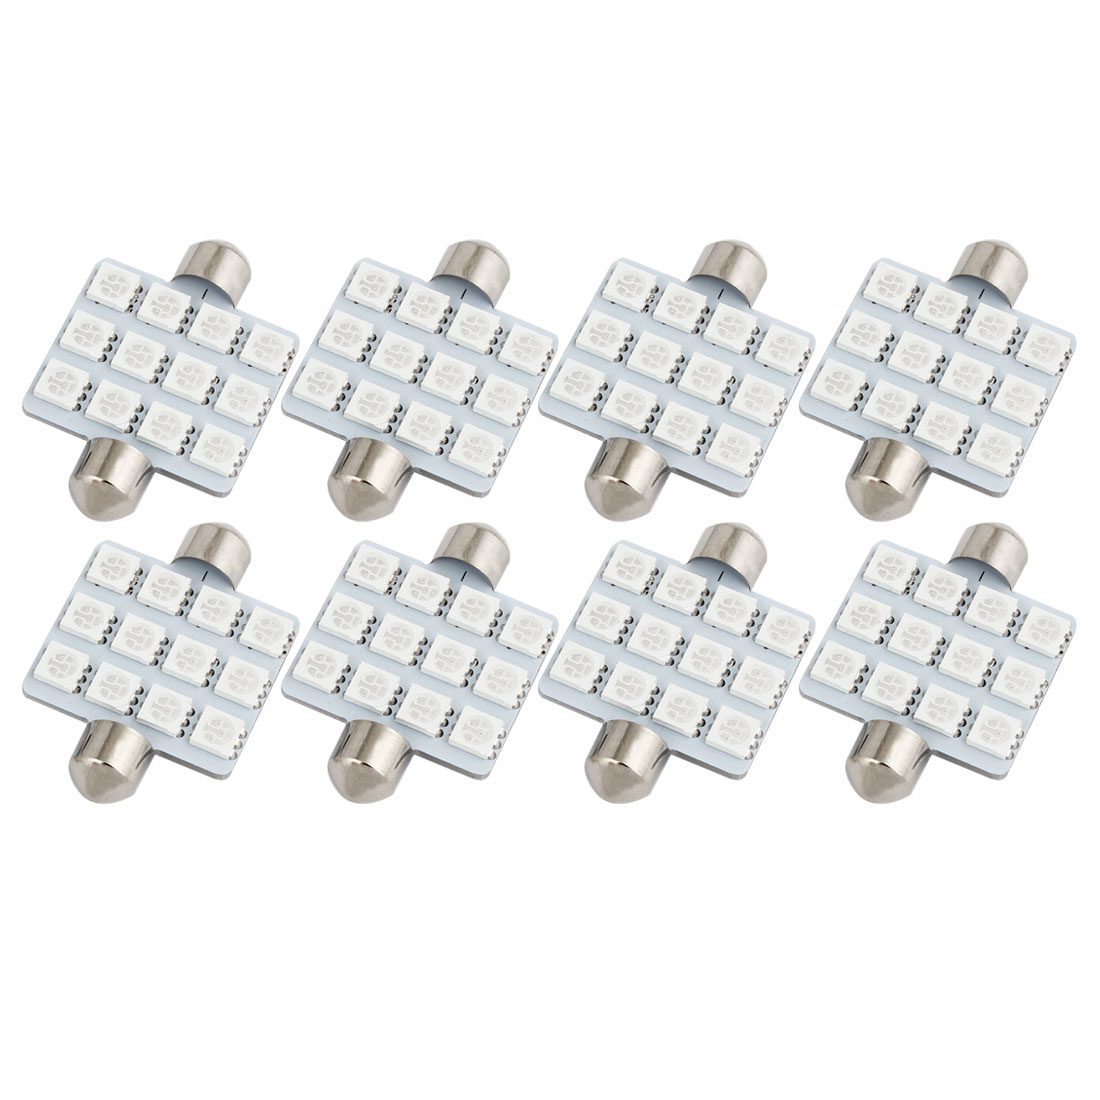 8 PCS 41mm 12-LED 5050 Blue SMD Festoon Map Light Lamp 212-2 12844 Internal